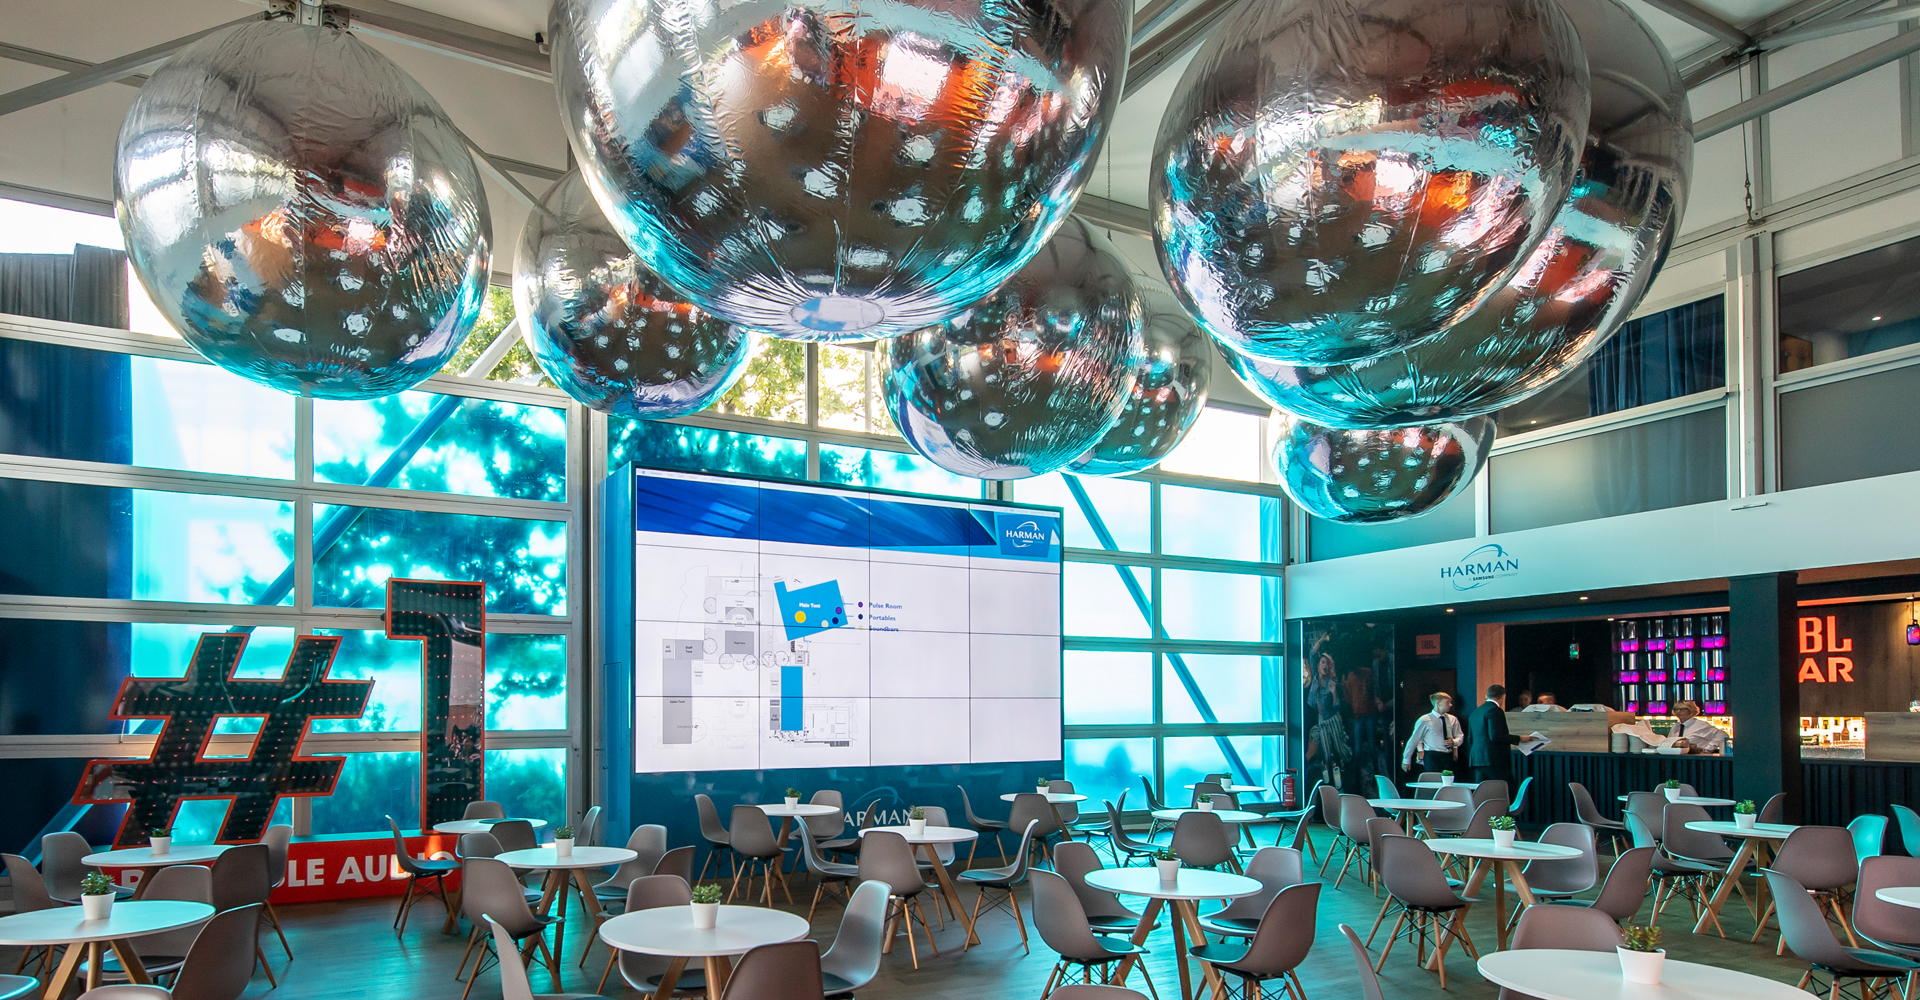 Harman exhibition and product displays by MCCGLC at IFA Berlin